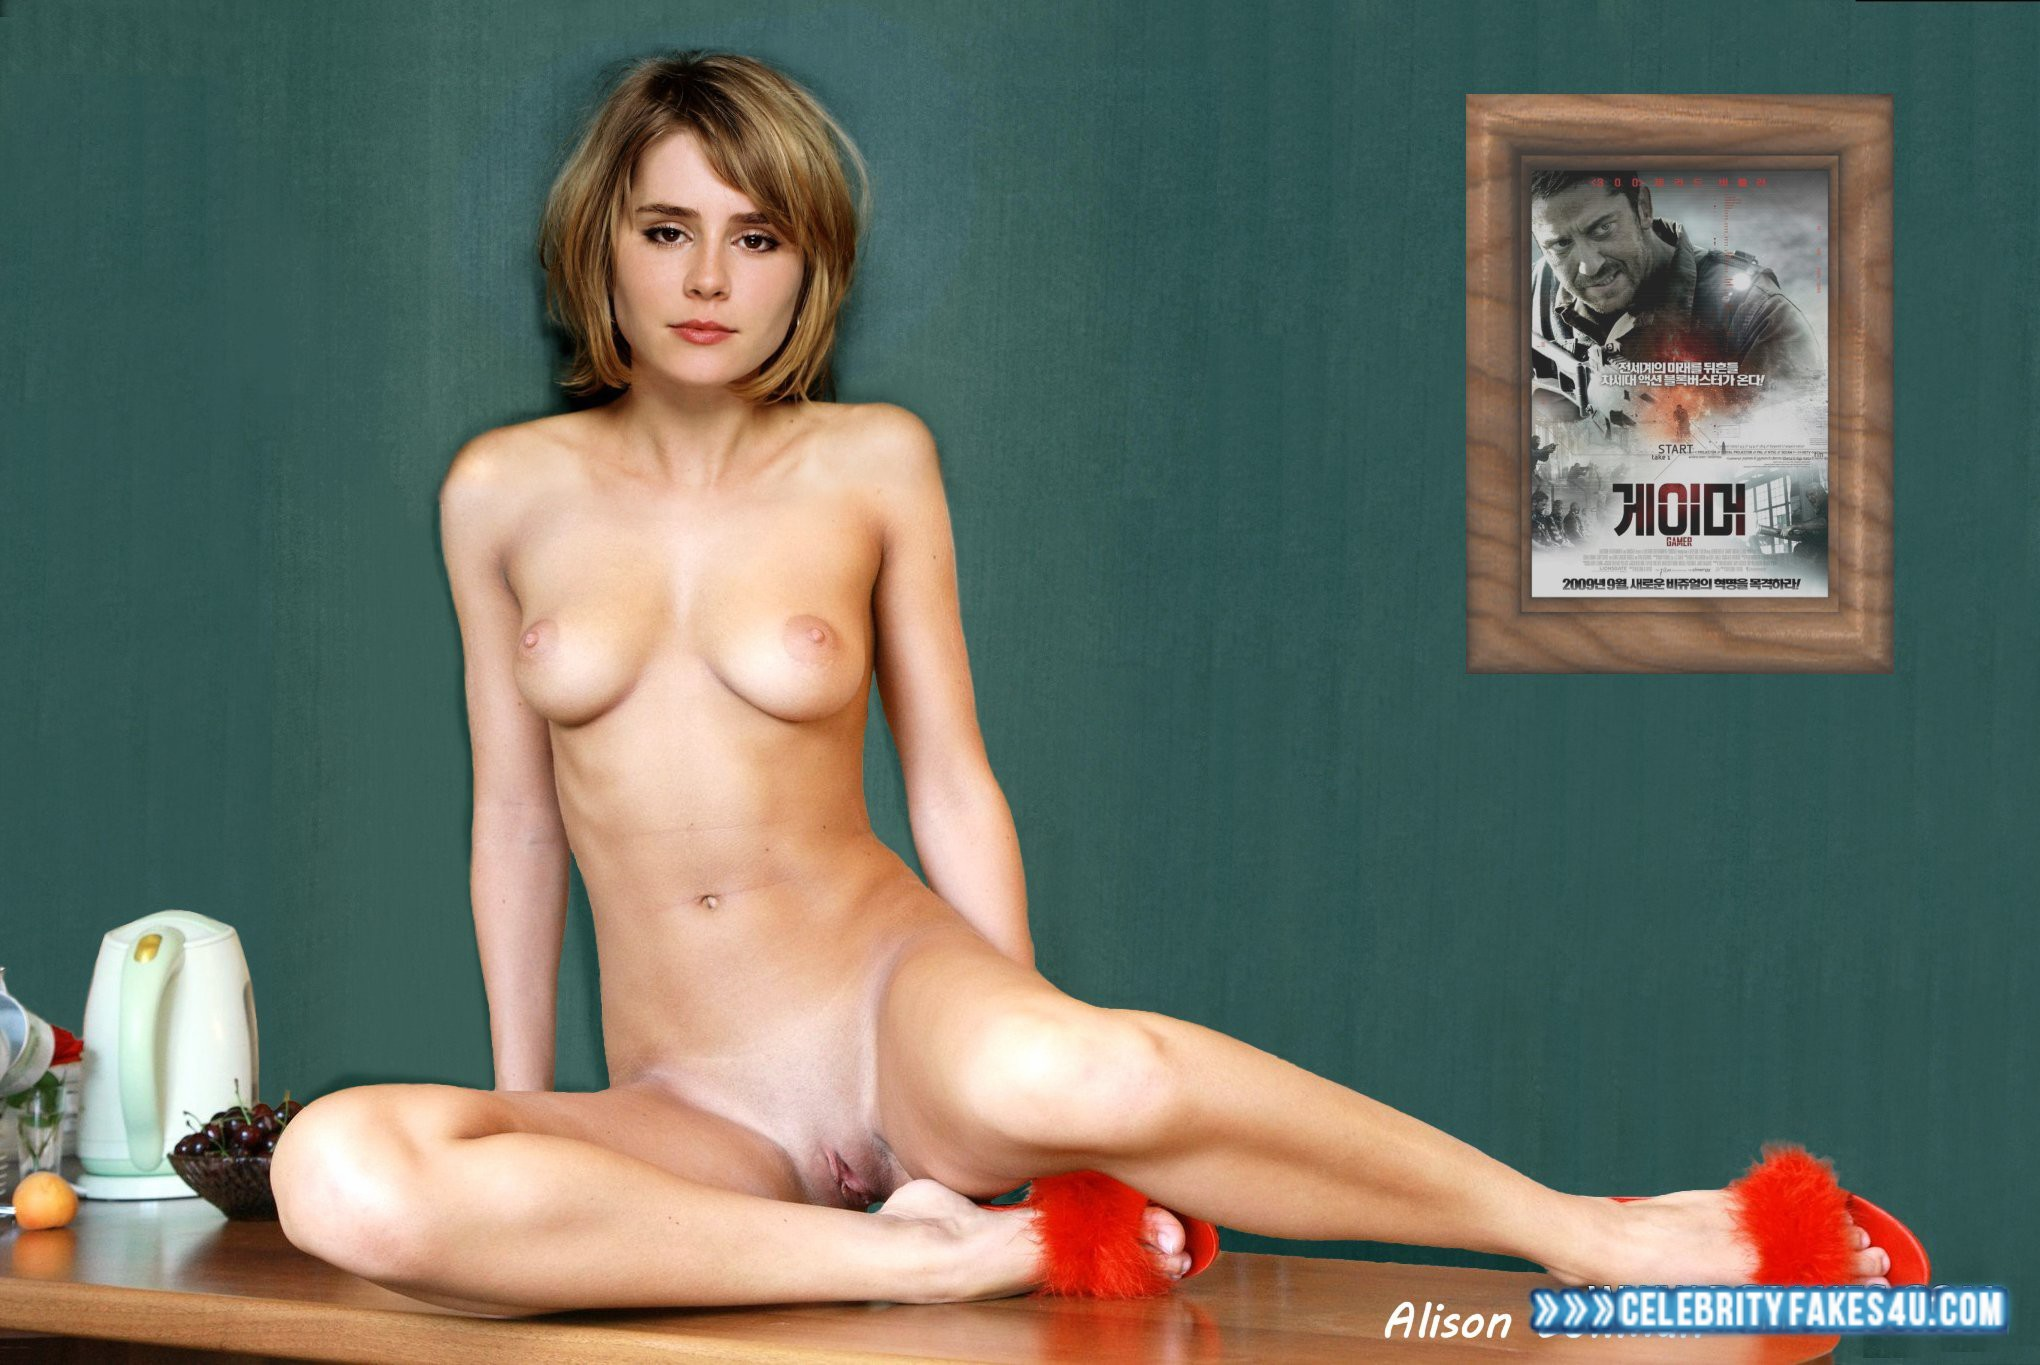 With the alison lohman naked thumbnails crab position